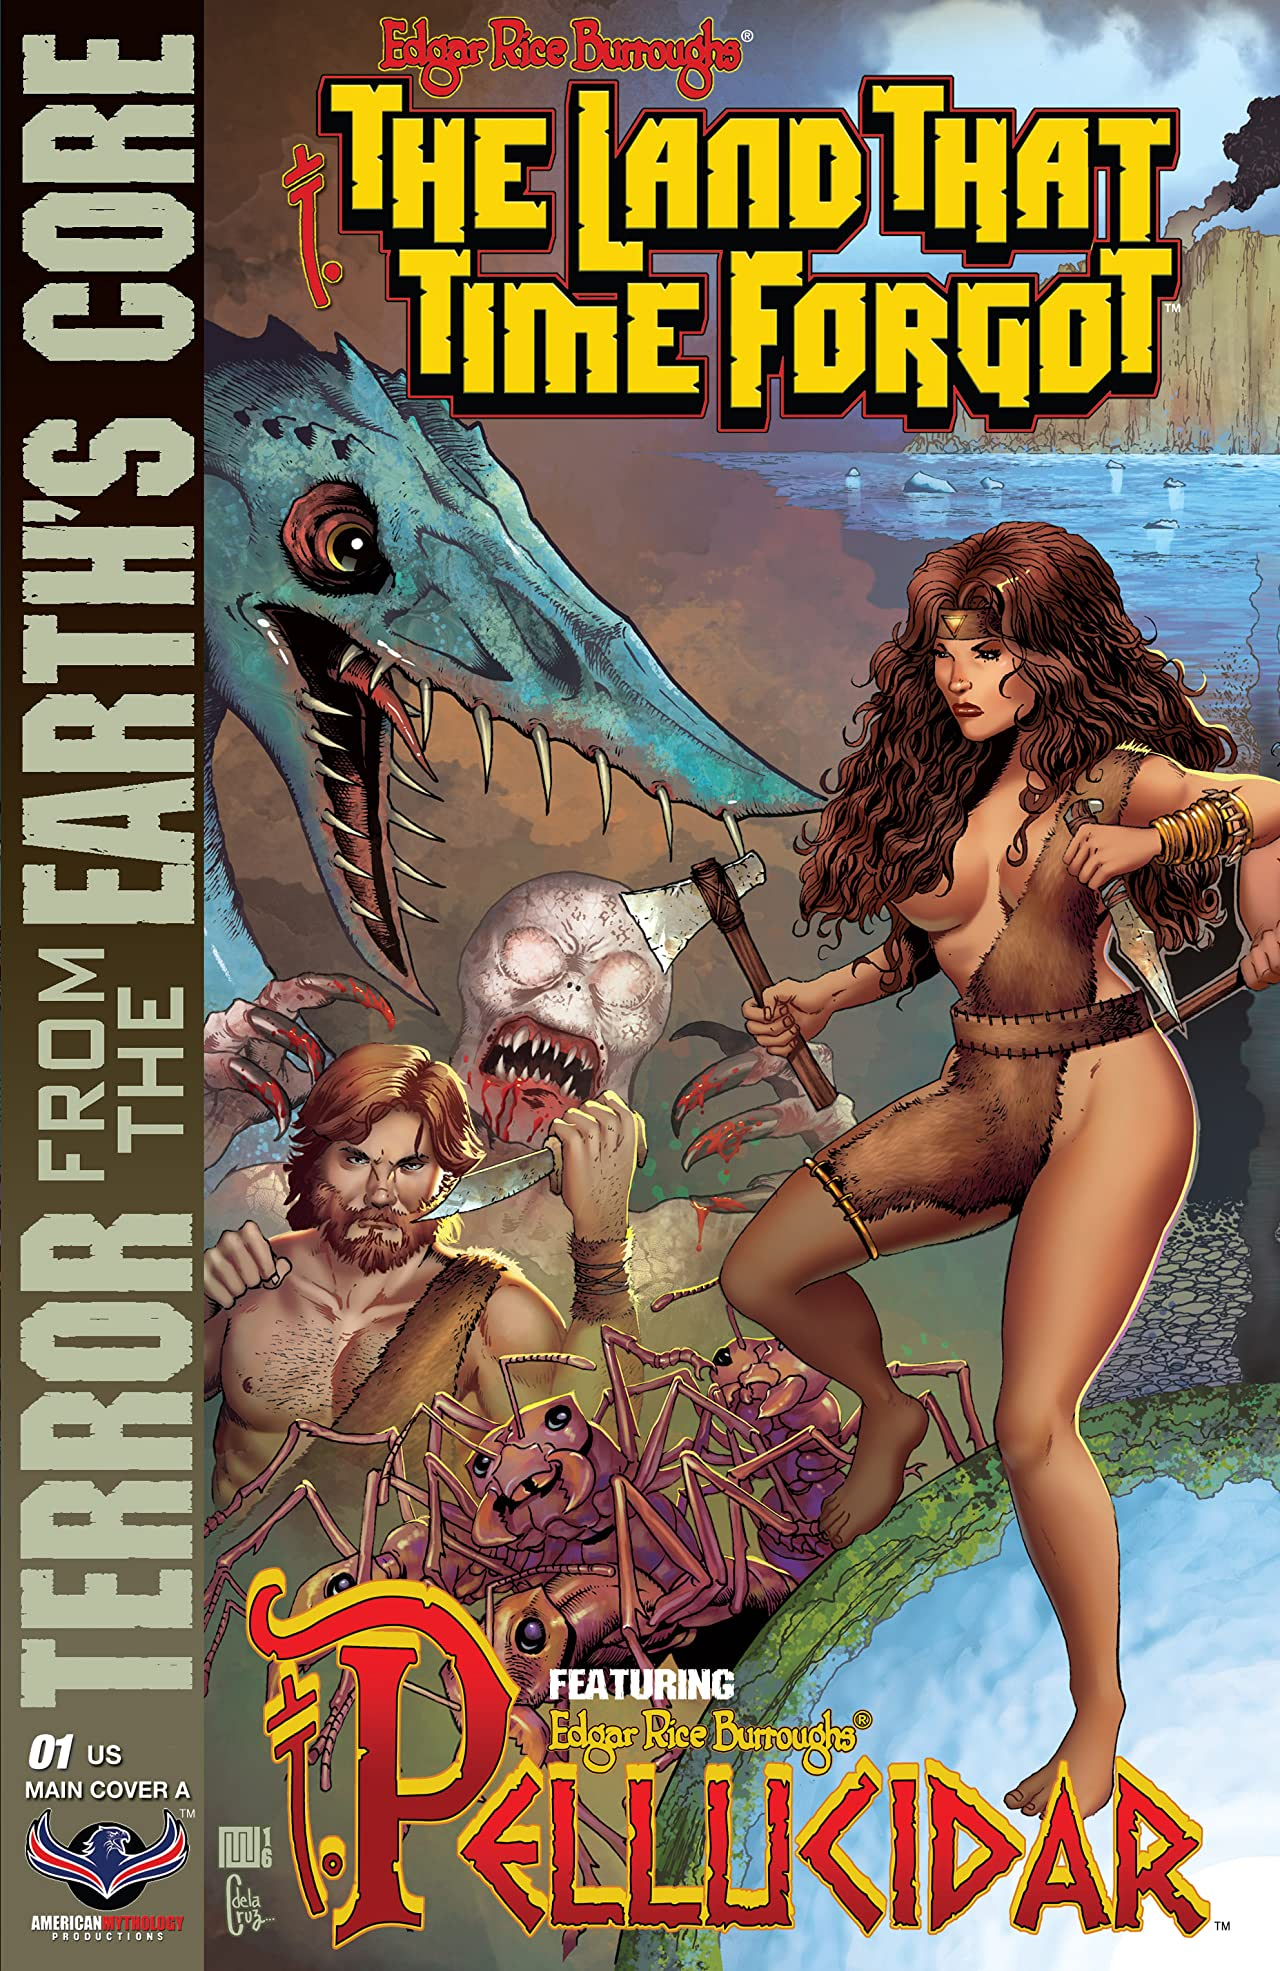 The Land That Time Forgot: Terror From The Earth's Core #1